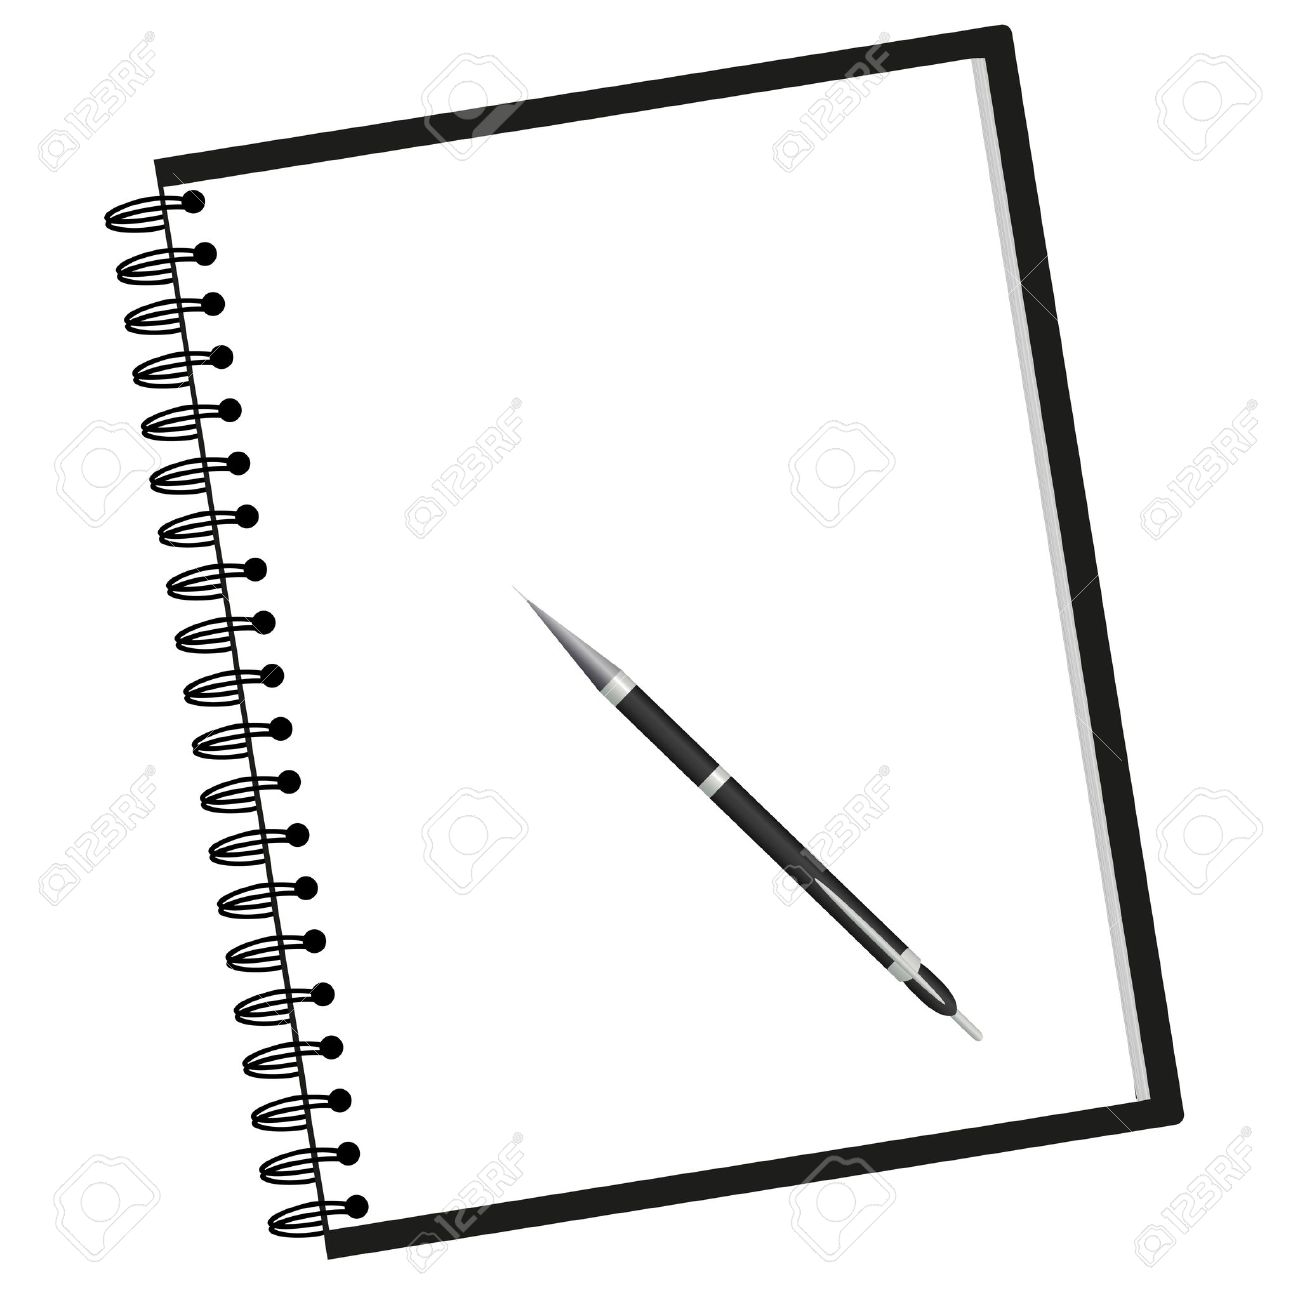 3,482 Spring Notebook Stock Vector Illustration And Royalty Free.